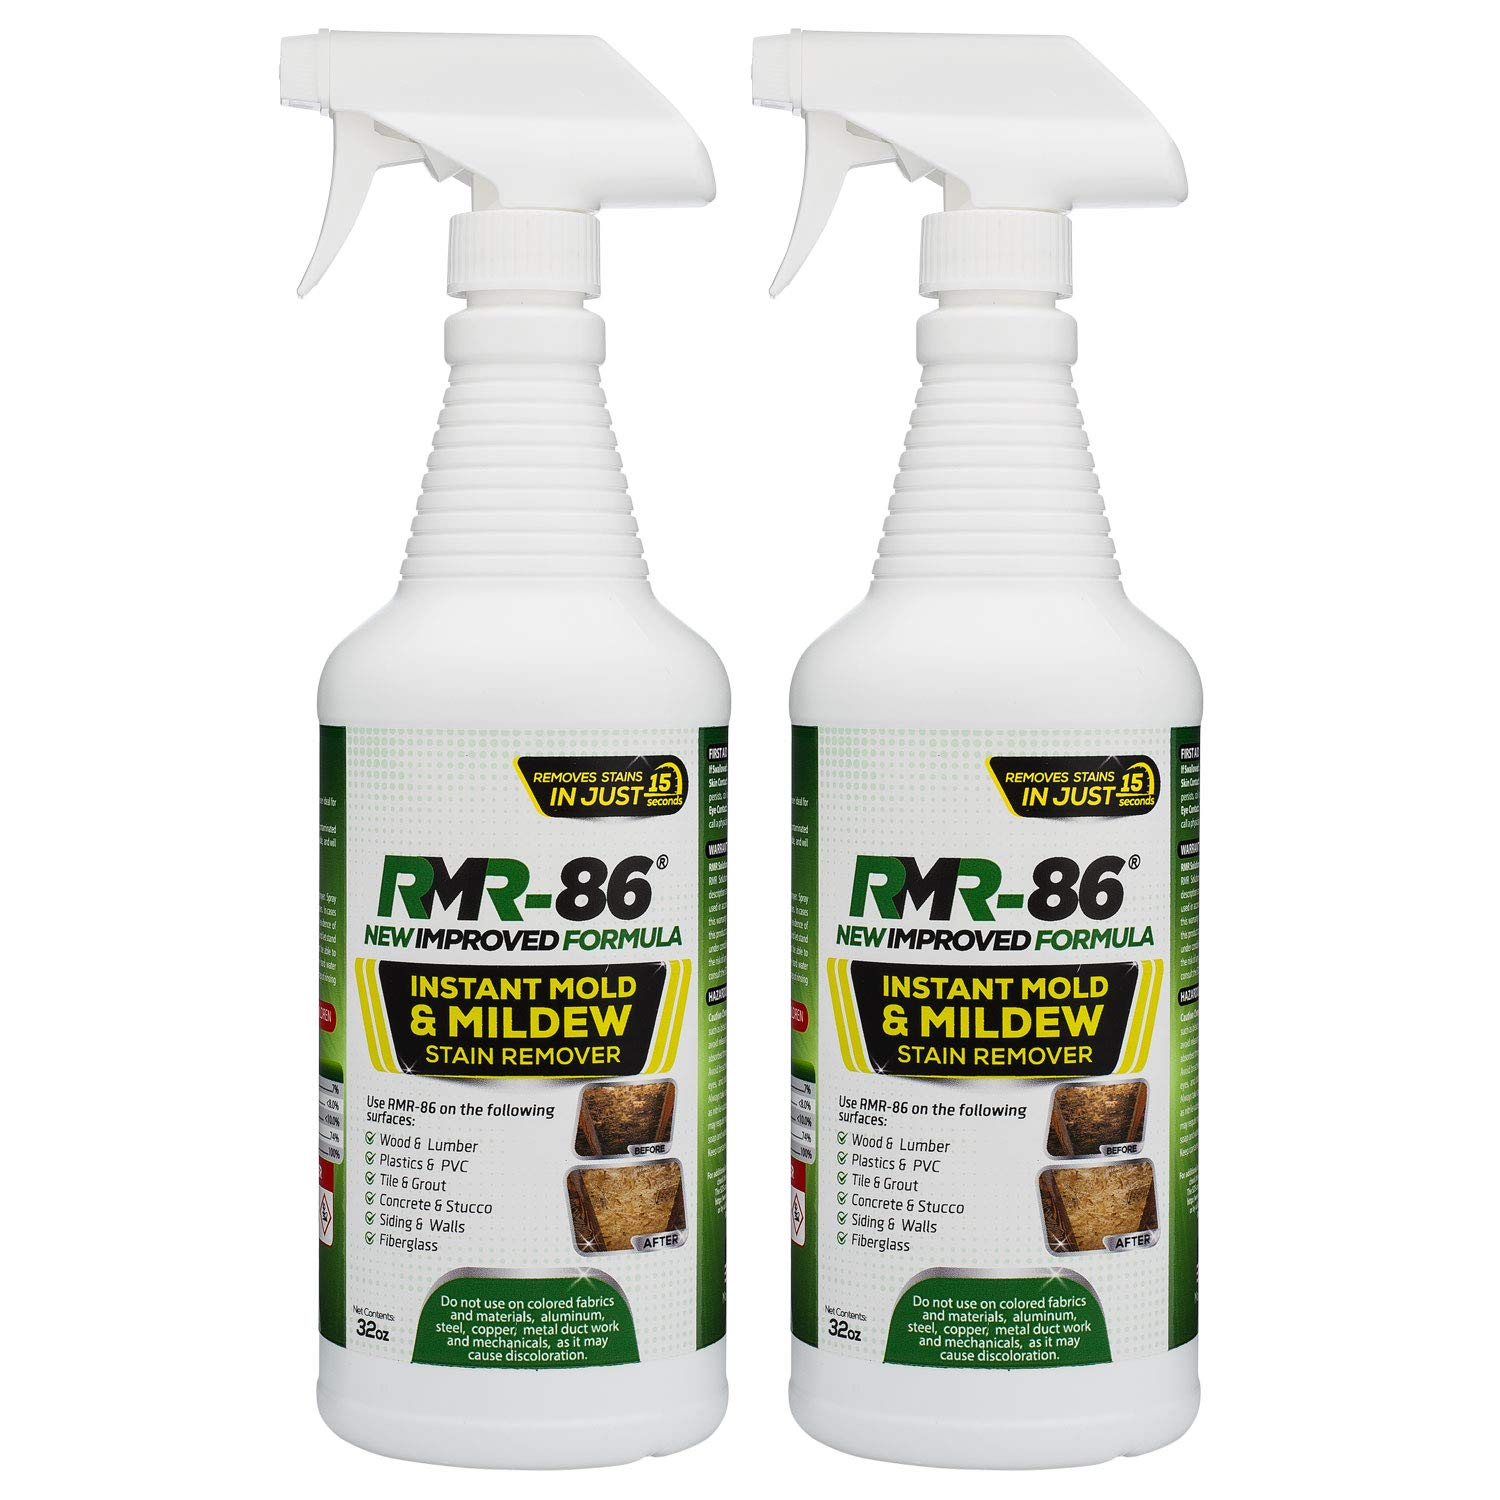 RMR-86 Instant Mold Stain and Mildew Stain Remover (32 Ounce) 2 Pack by RMR Brands